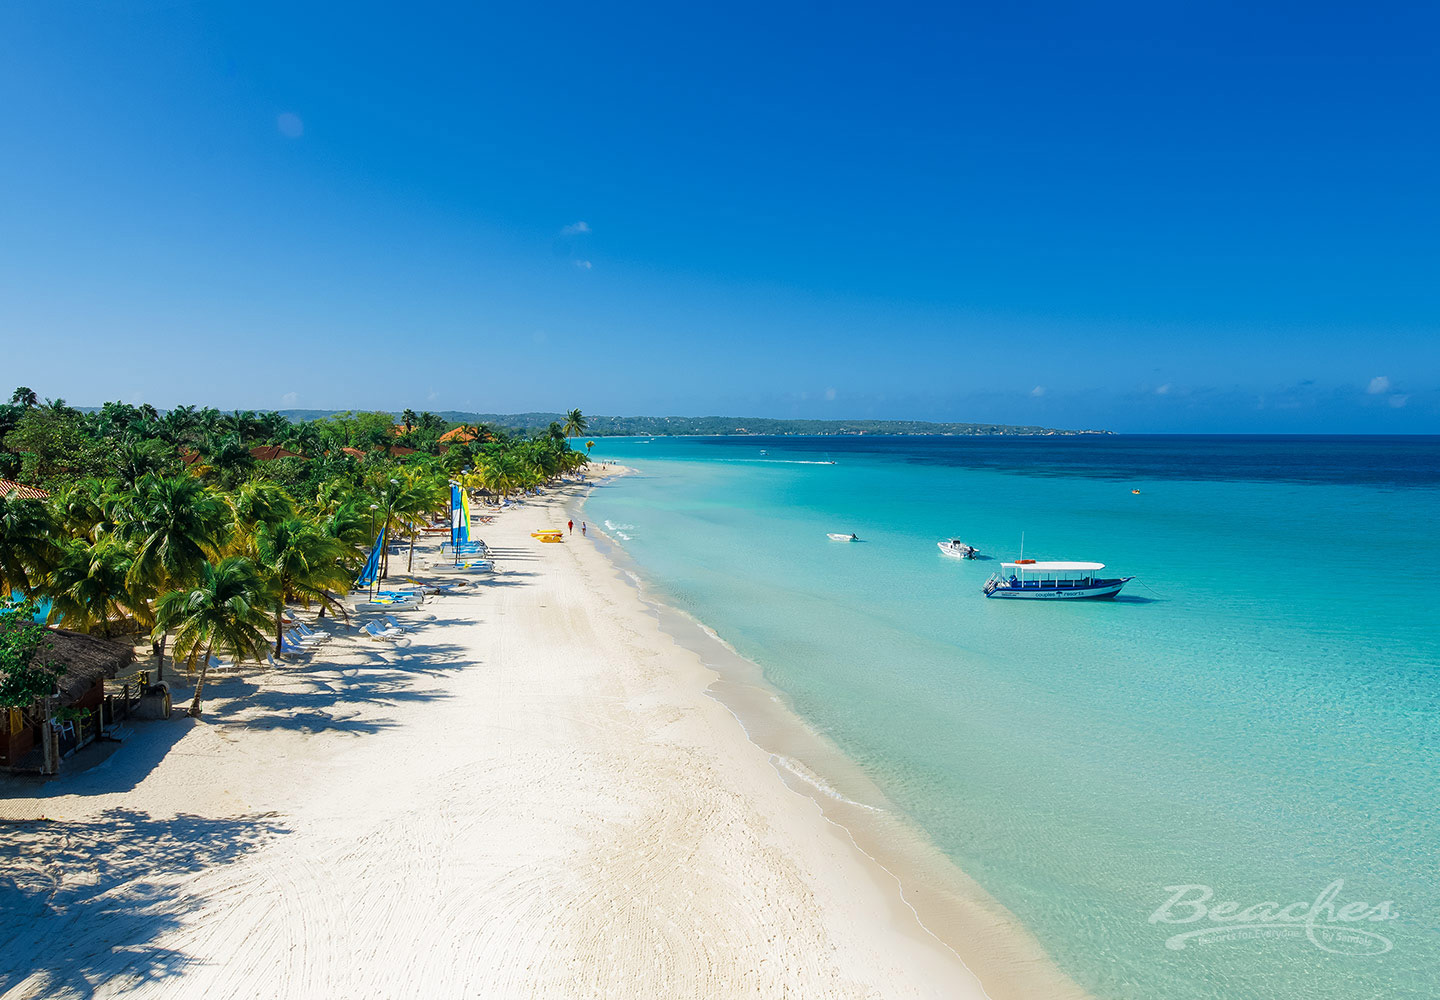 Travel Agency All-Inclusive Resort Beaches Negril 006